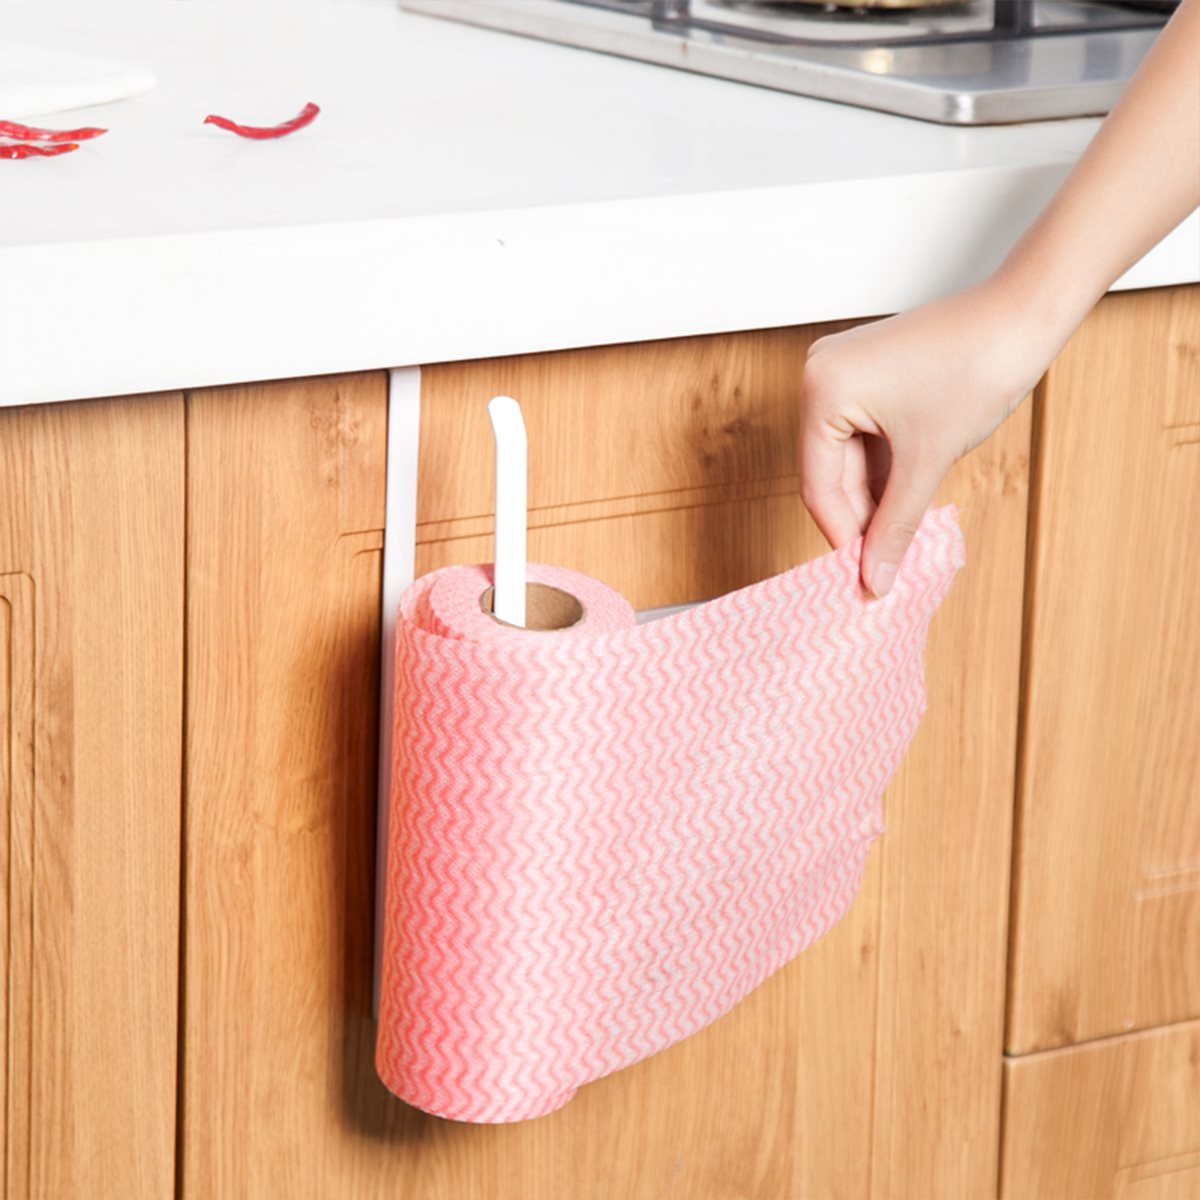 Kitchen hand towel holder - Roll Paper Holder Wall Mounted Kitchen Cupboard Towel Rack Toilet Bathroom Paper Holder Towel Rack Hand